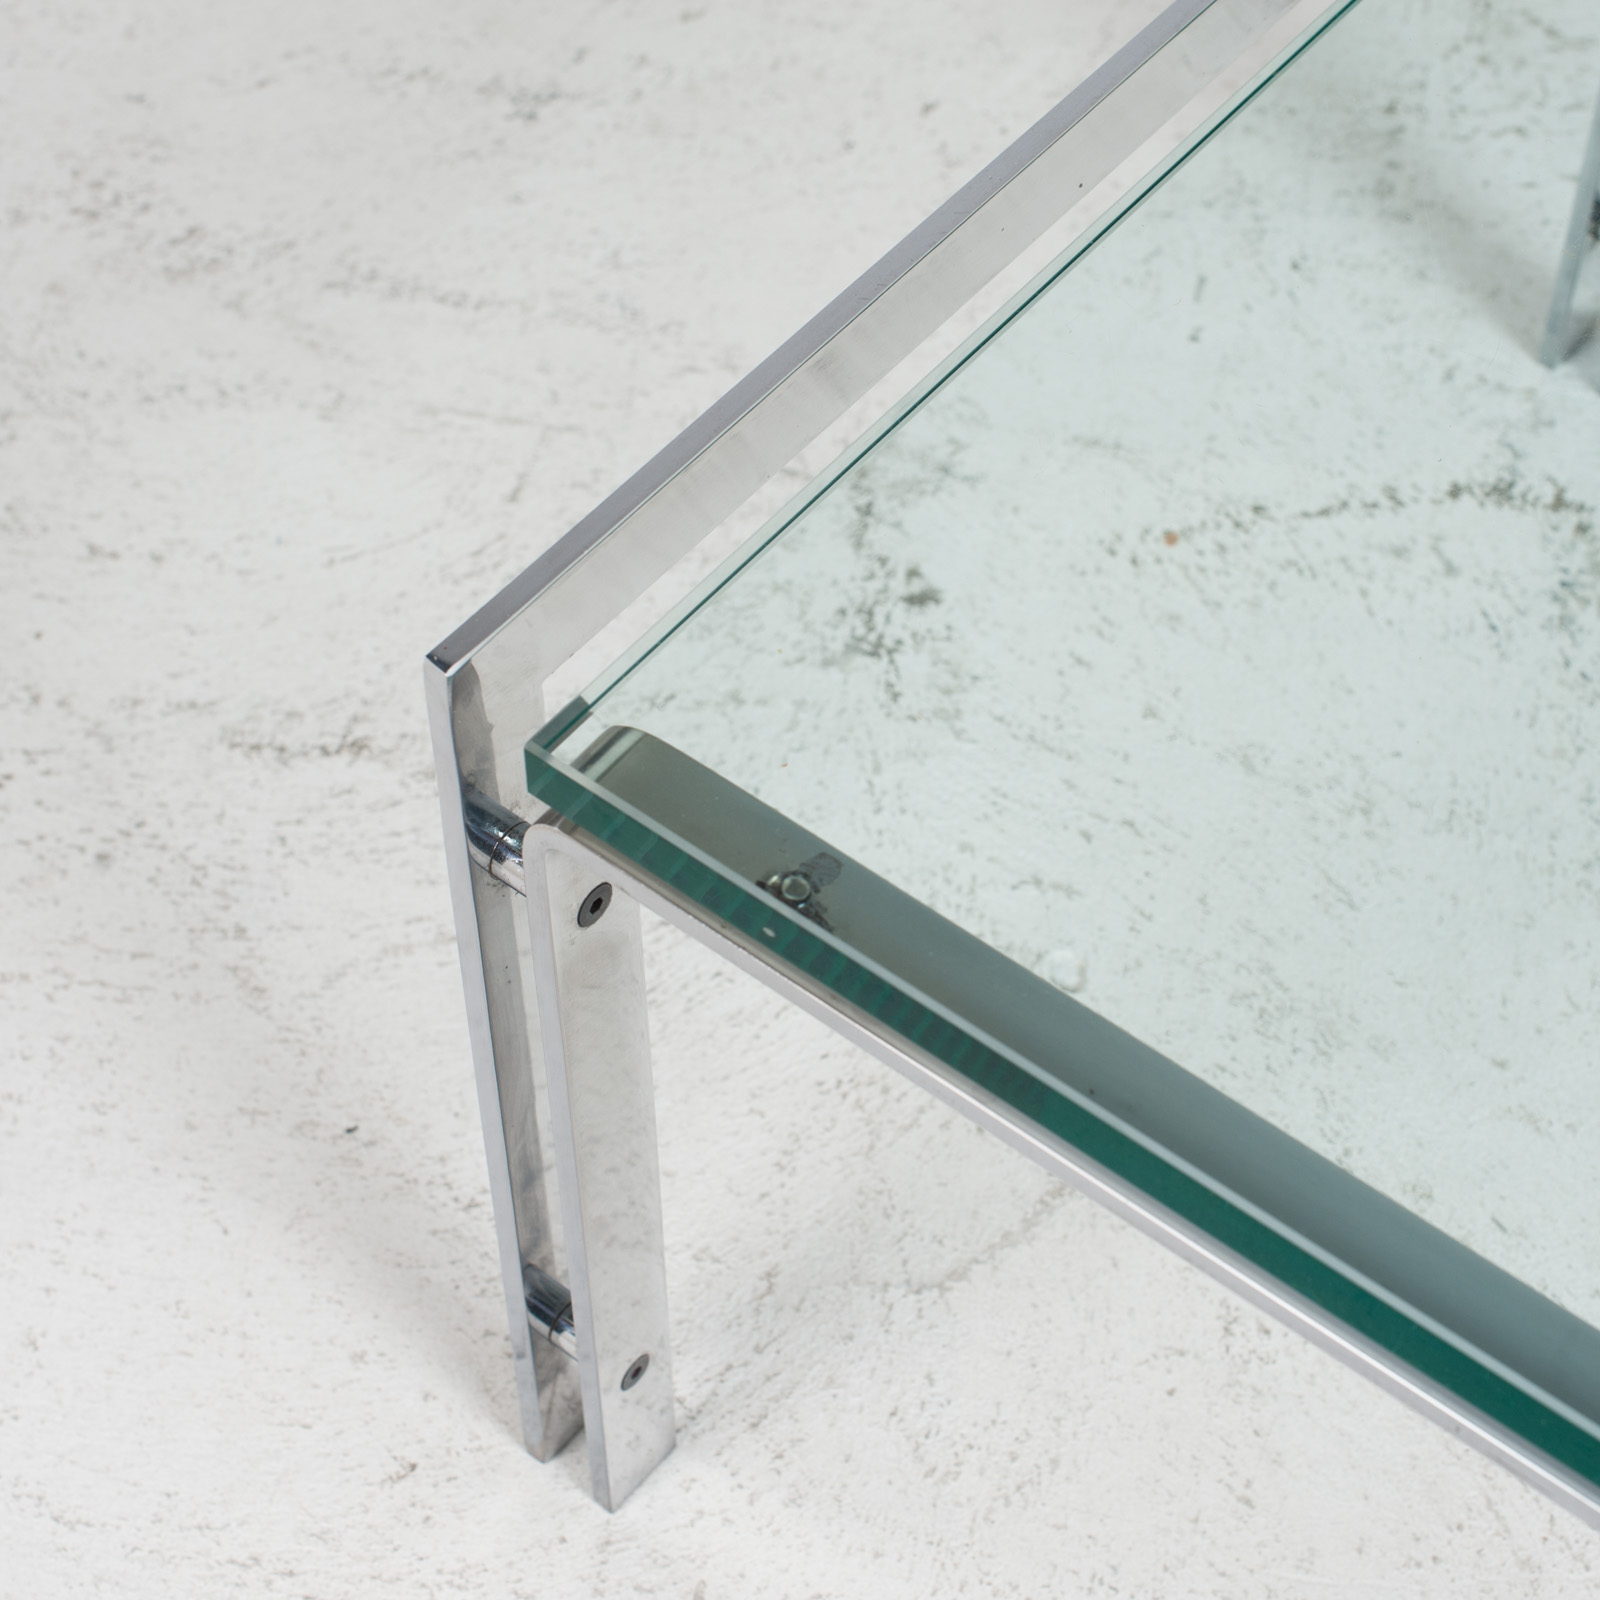 M1 Coffee Table By Hank Kwint For Metaform In Chrome 1970s Netherlands 04